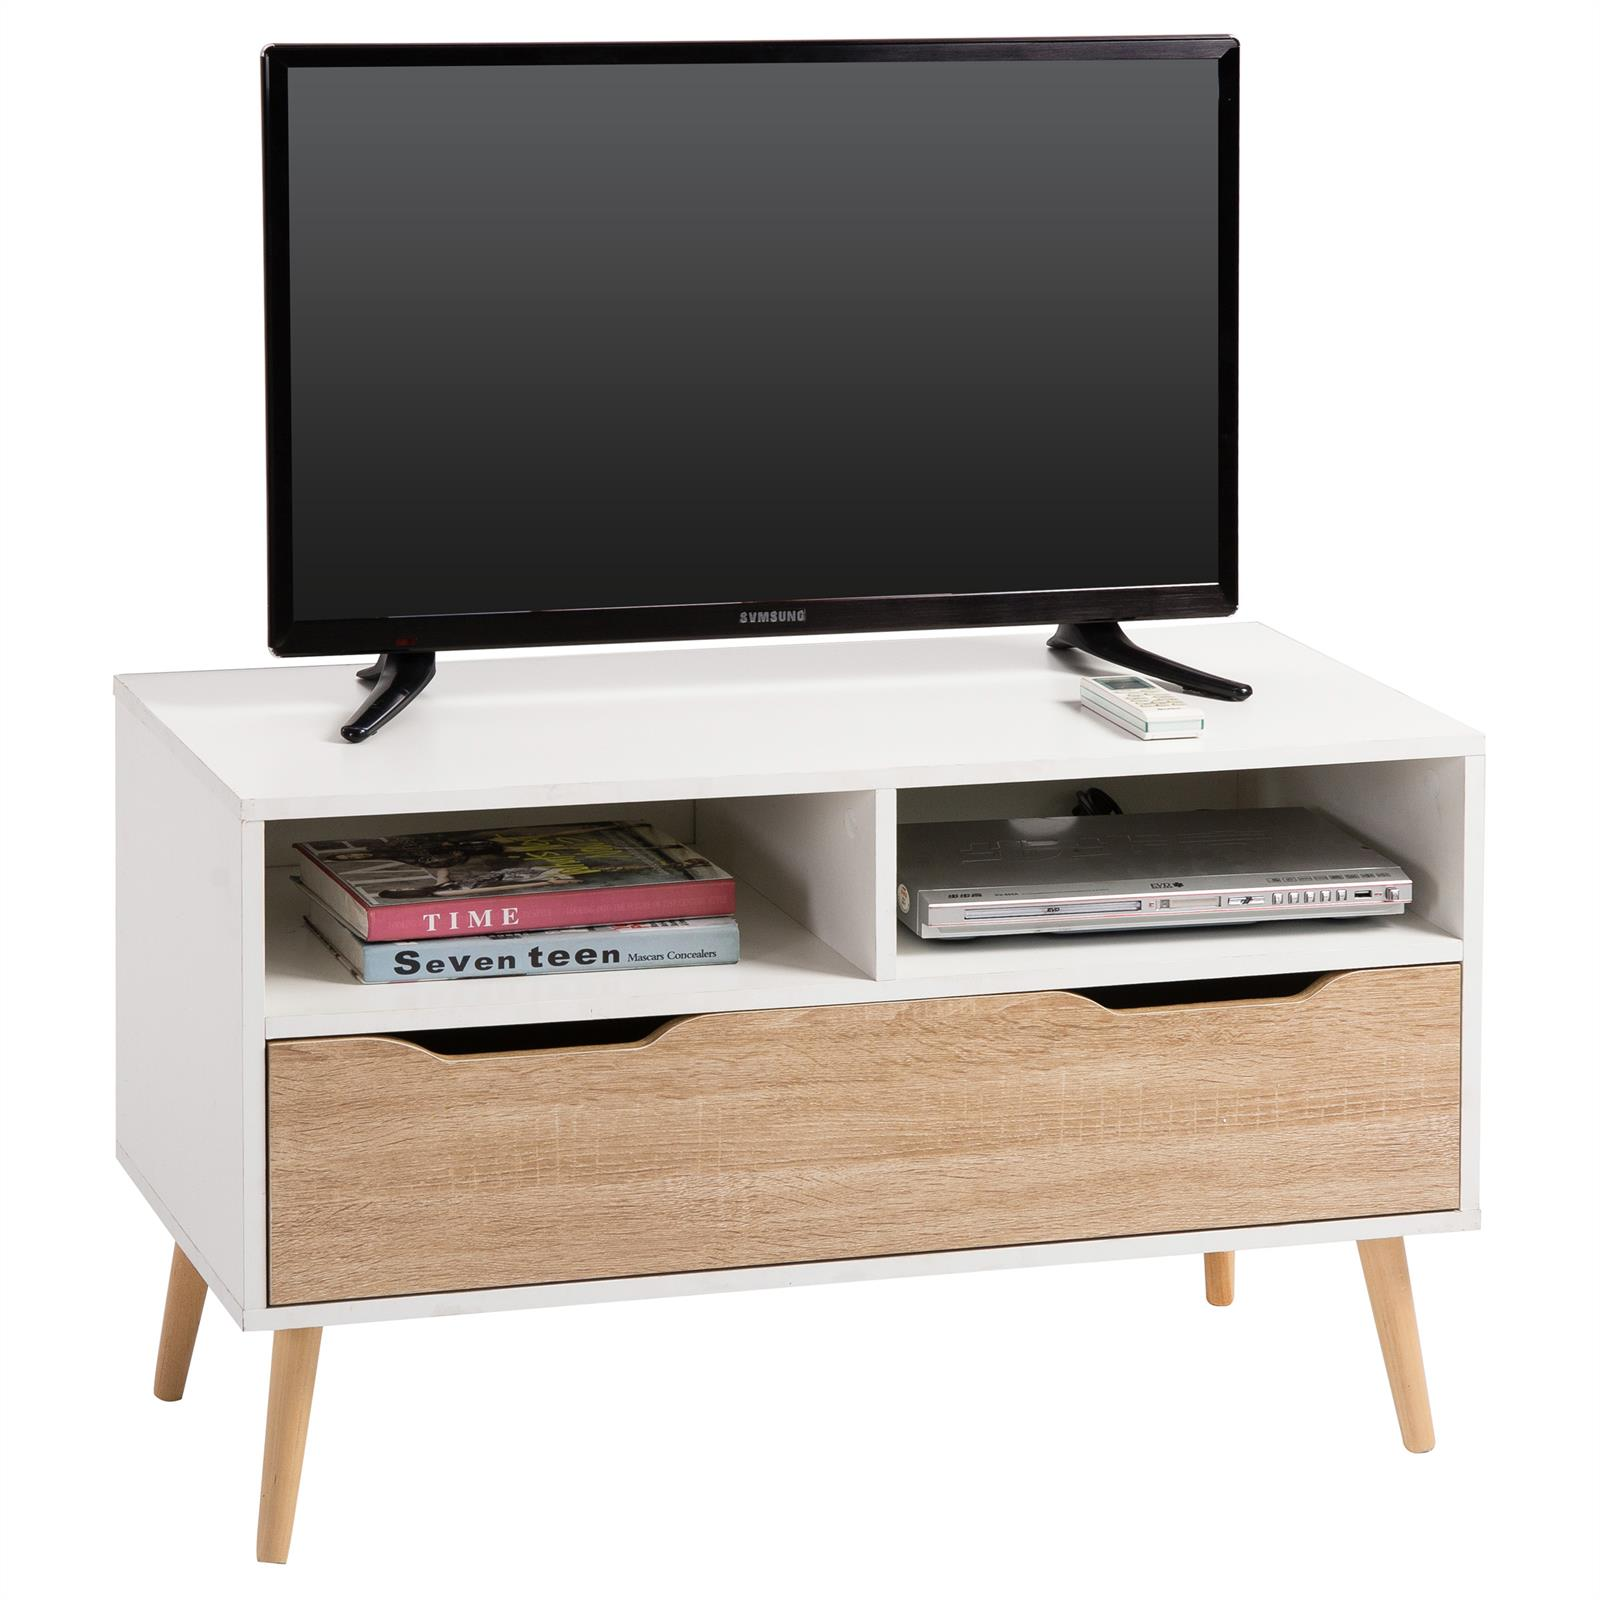 tv rack genova in wei sonoma eiche foliert mobilia24. Black Bedroom Furniture Sets. Home Design Ideas